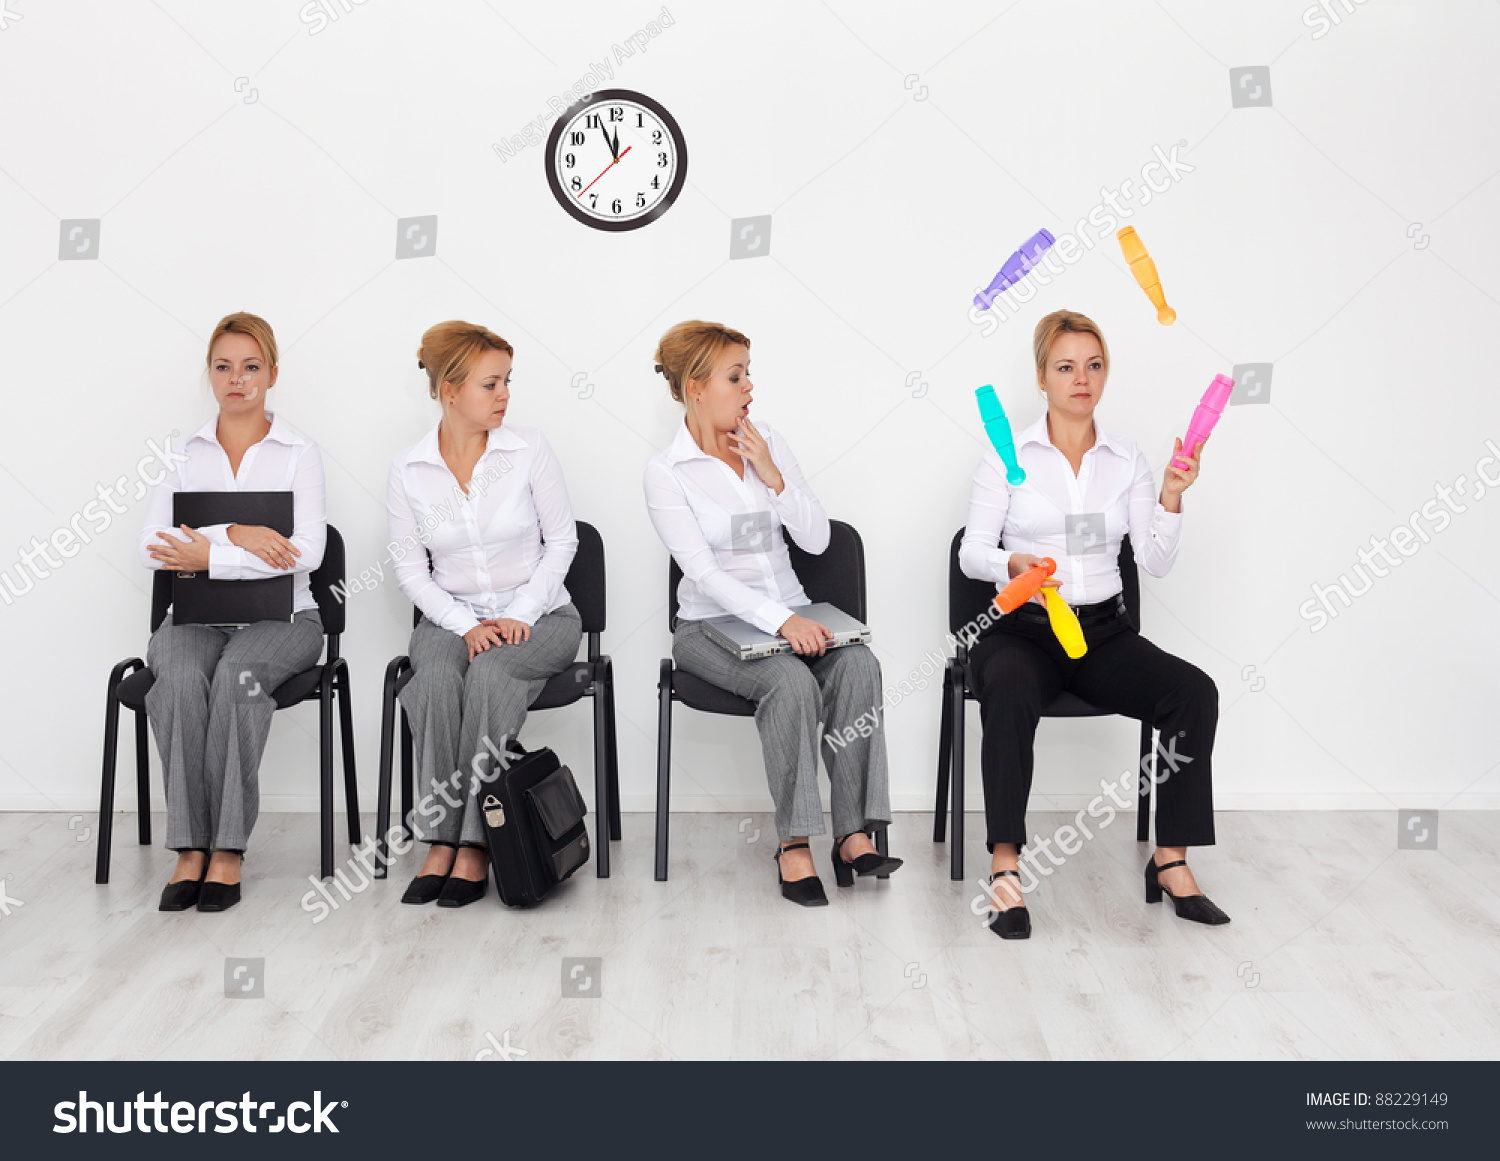 employees special skills wanted concept juggler stock photo employees special skills wanted concept the juggler